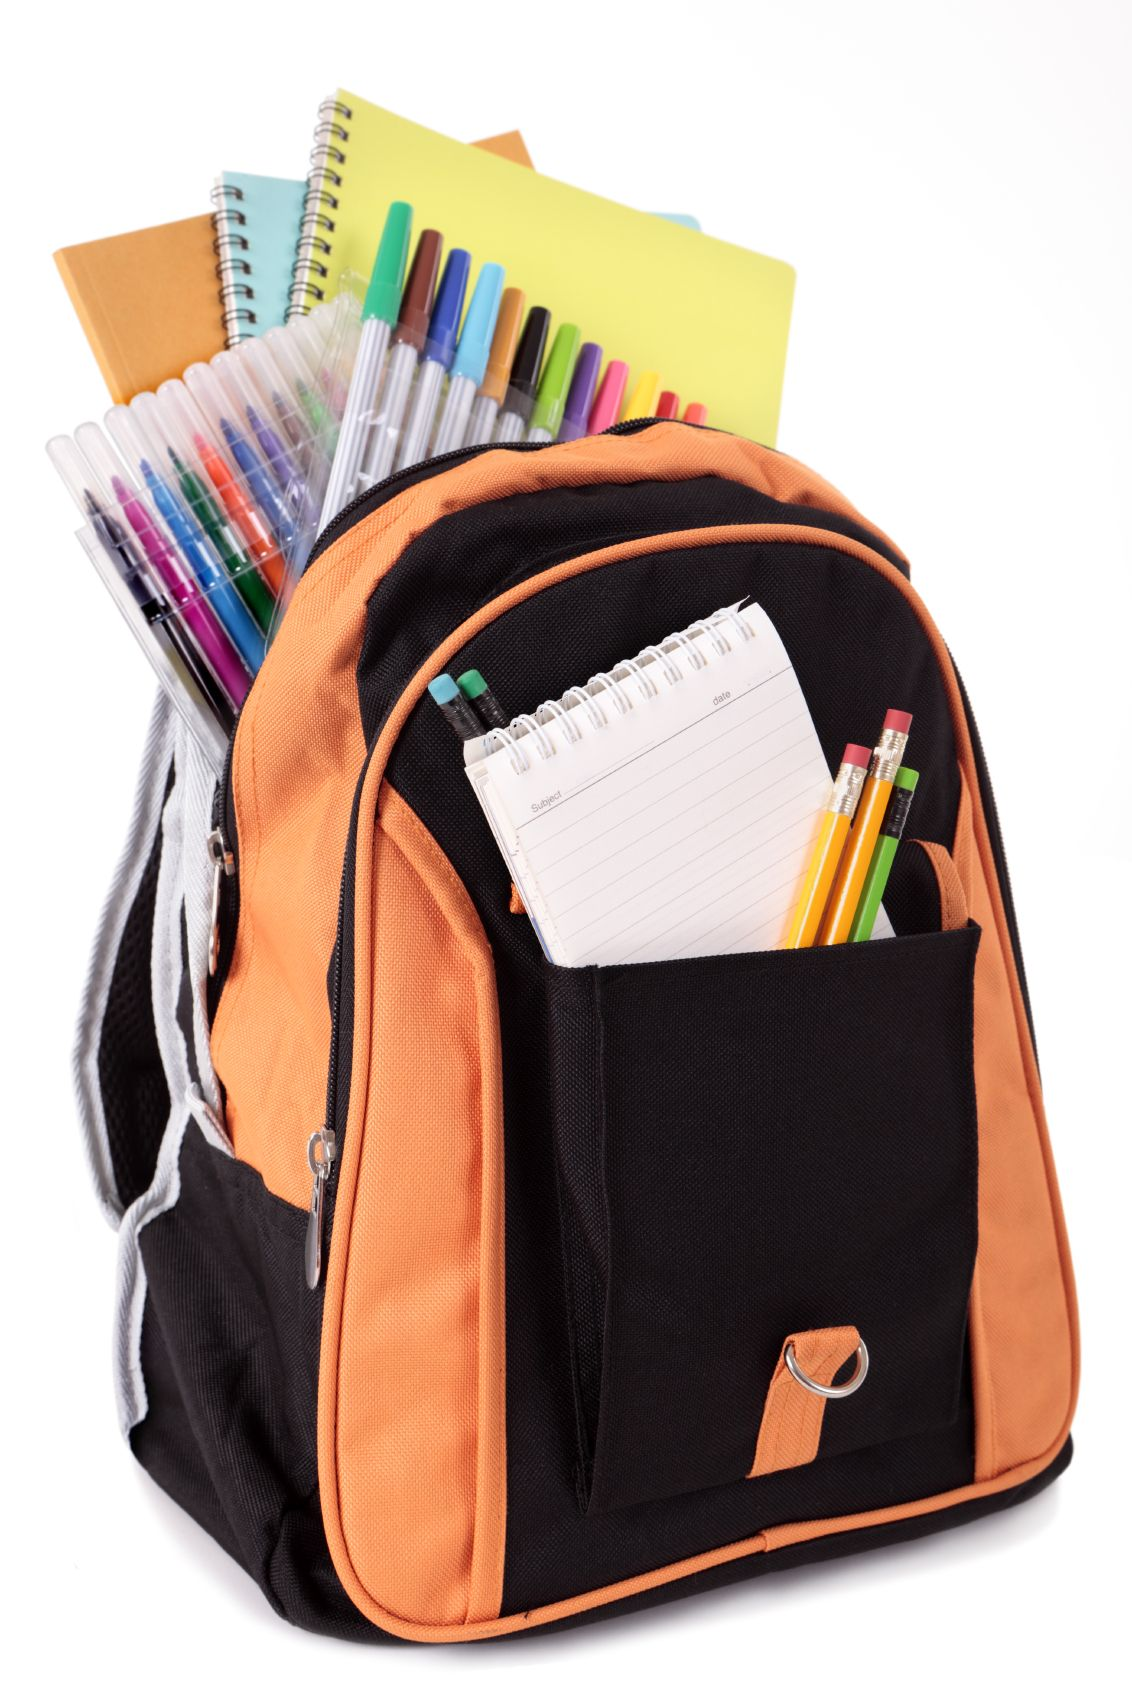 Where To Get Free Backpacks And School Supplies Near Me